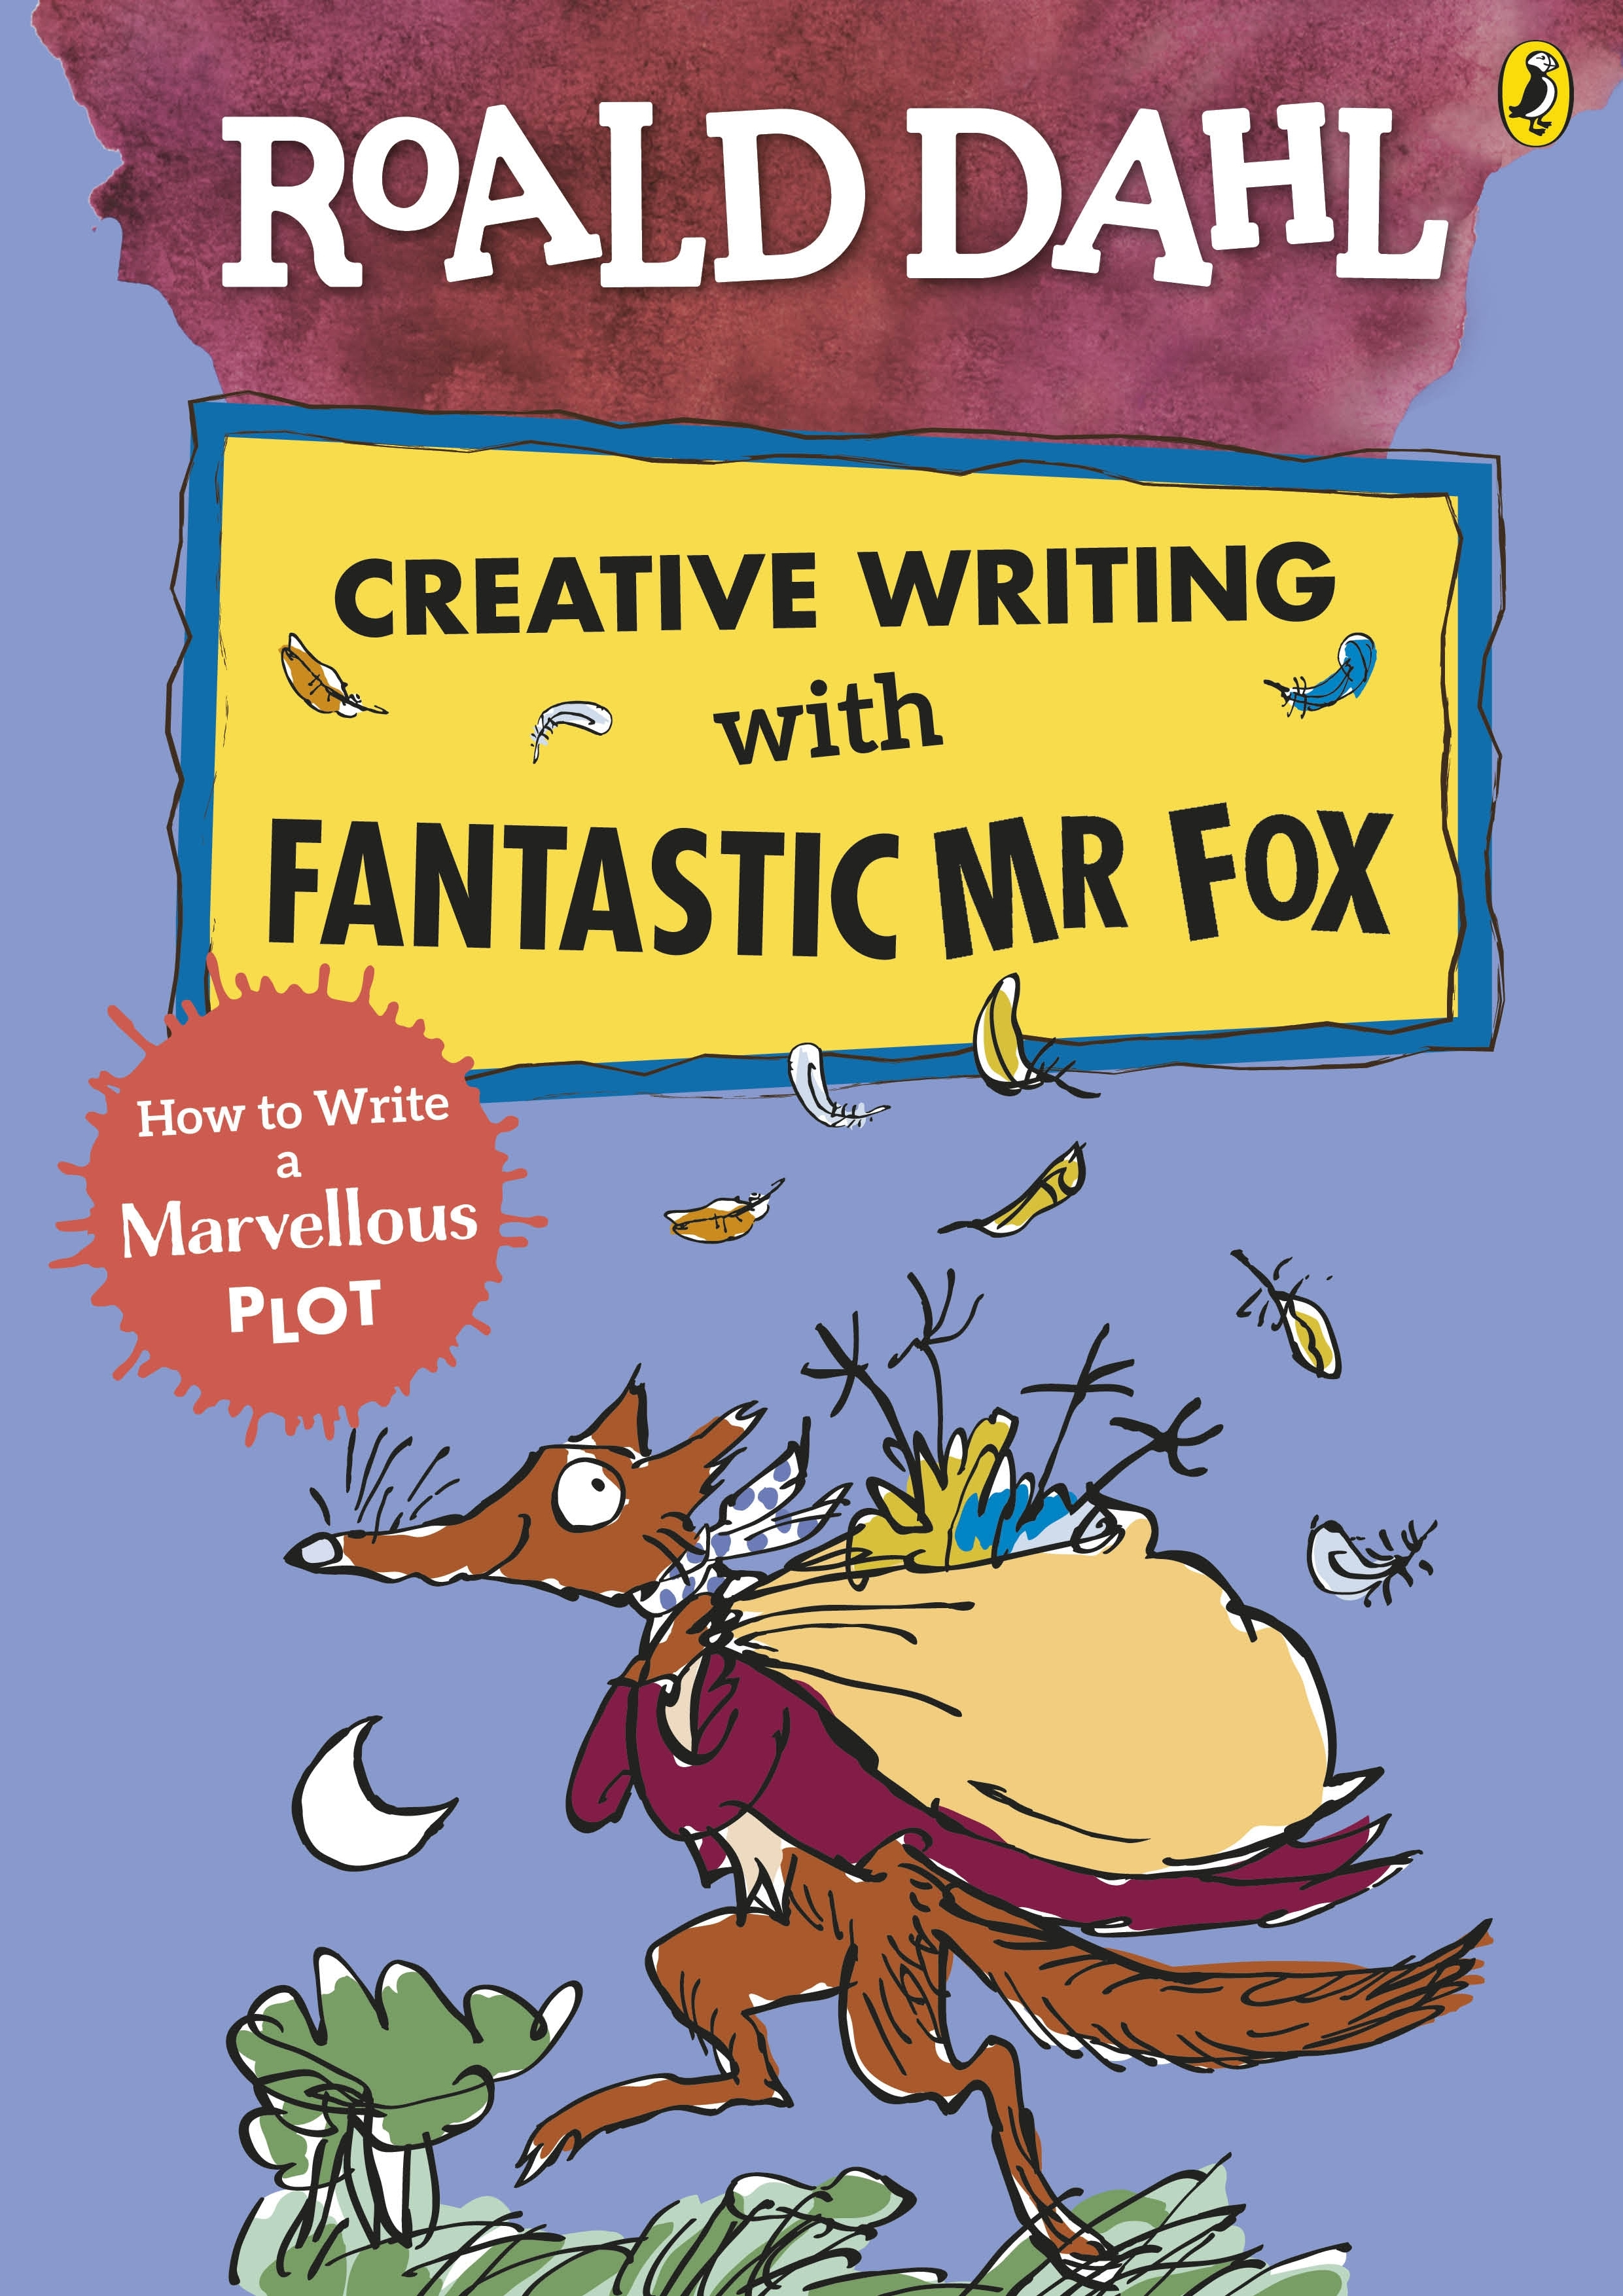 Roald Dahl S Creative Writing With Fantastic Mr Fox By Roald Dahl Penguin Books Australia